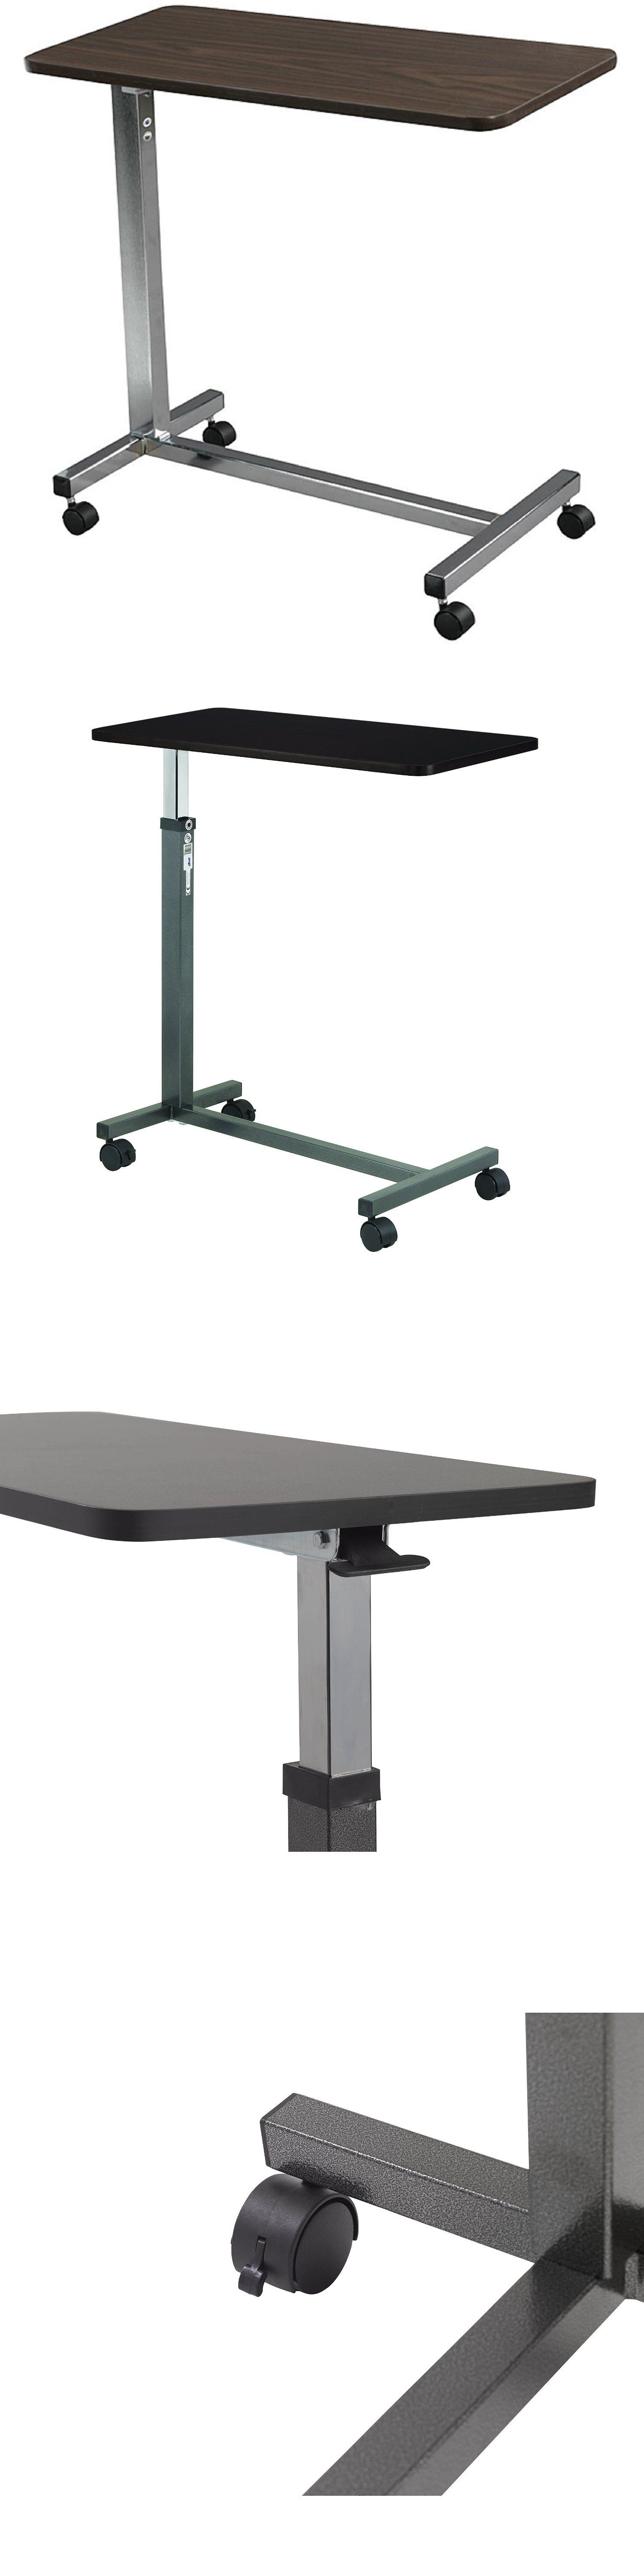 Overbed table food tray non tilt top bed hospital adjustable rolling - Other Daily Living Aids Overbed Table Food Tray Non Tilt Top Bed Hospital Adjustable